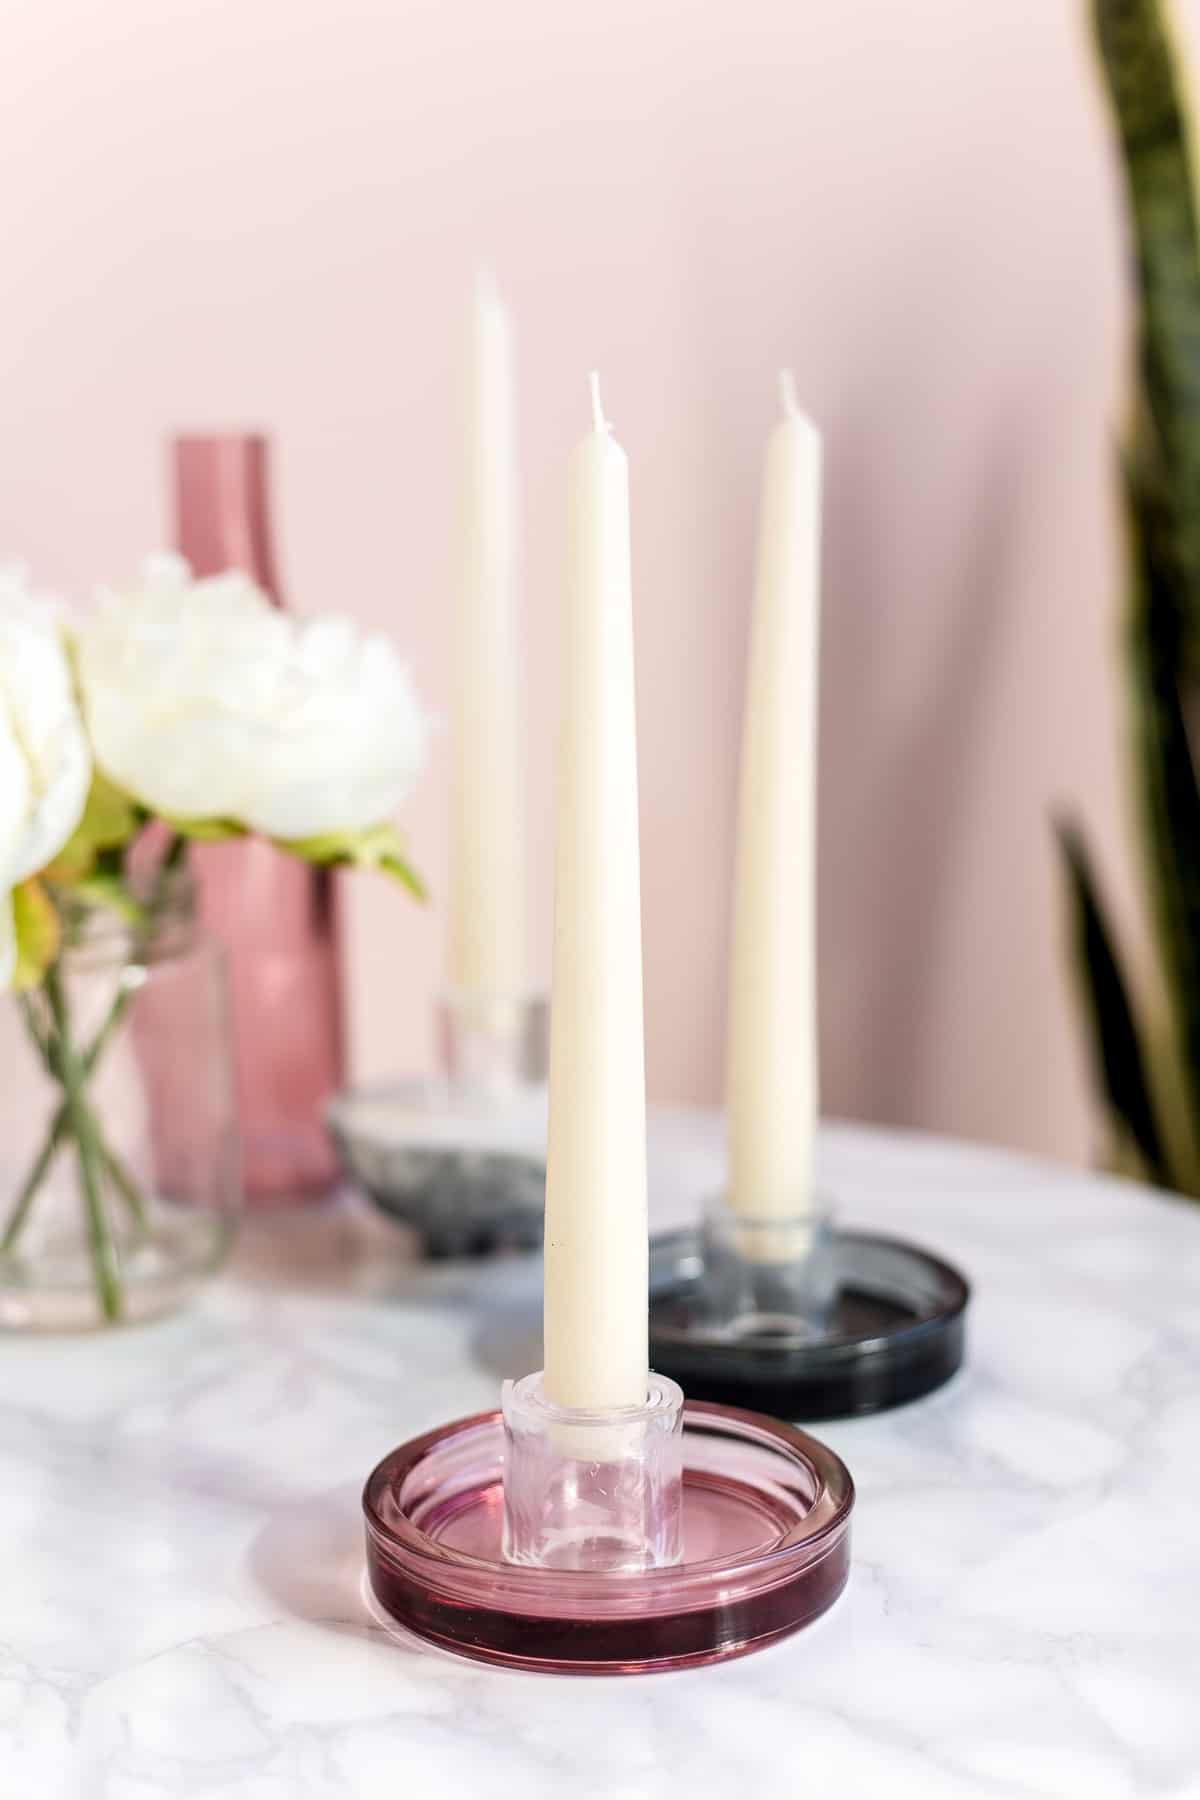 The DIY Perspex Candle Holders